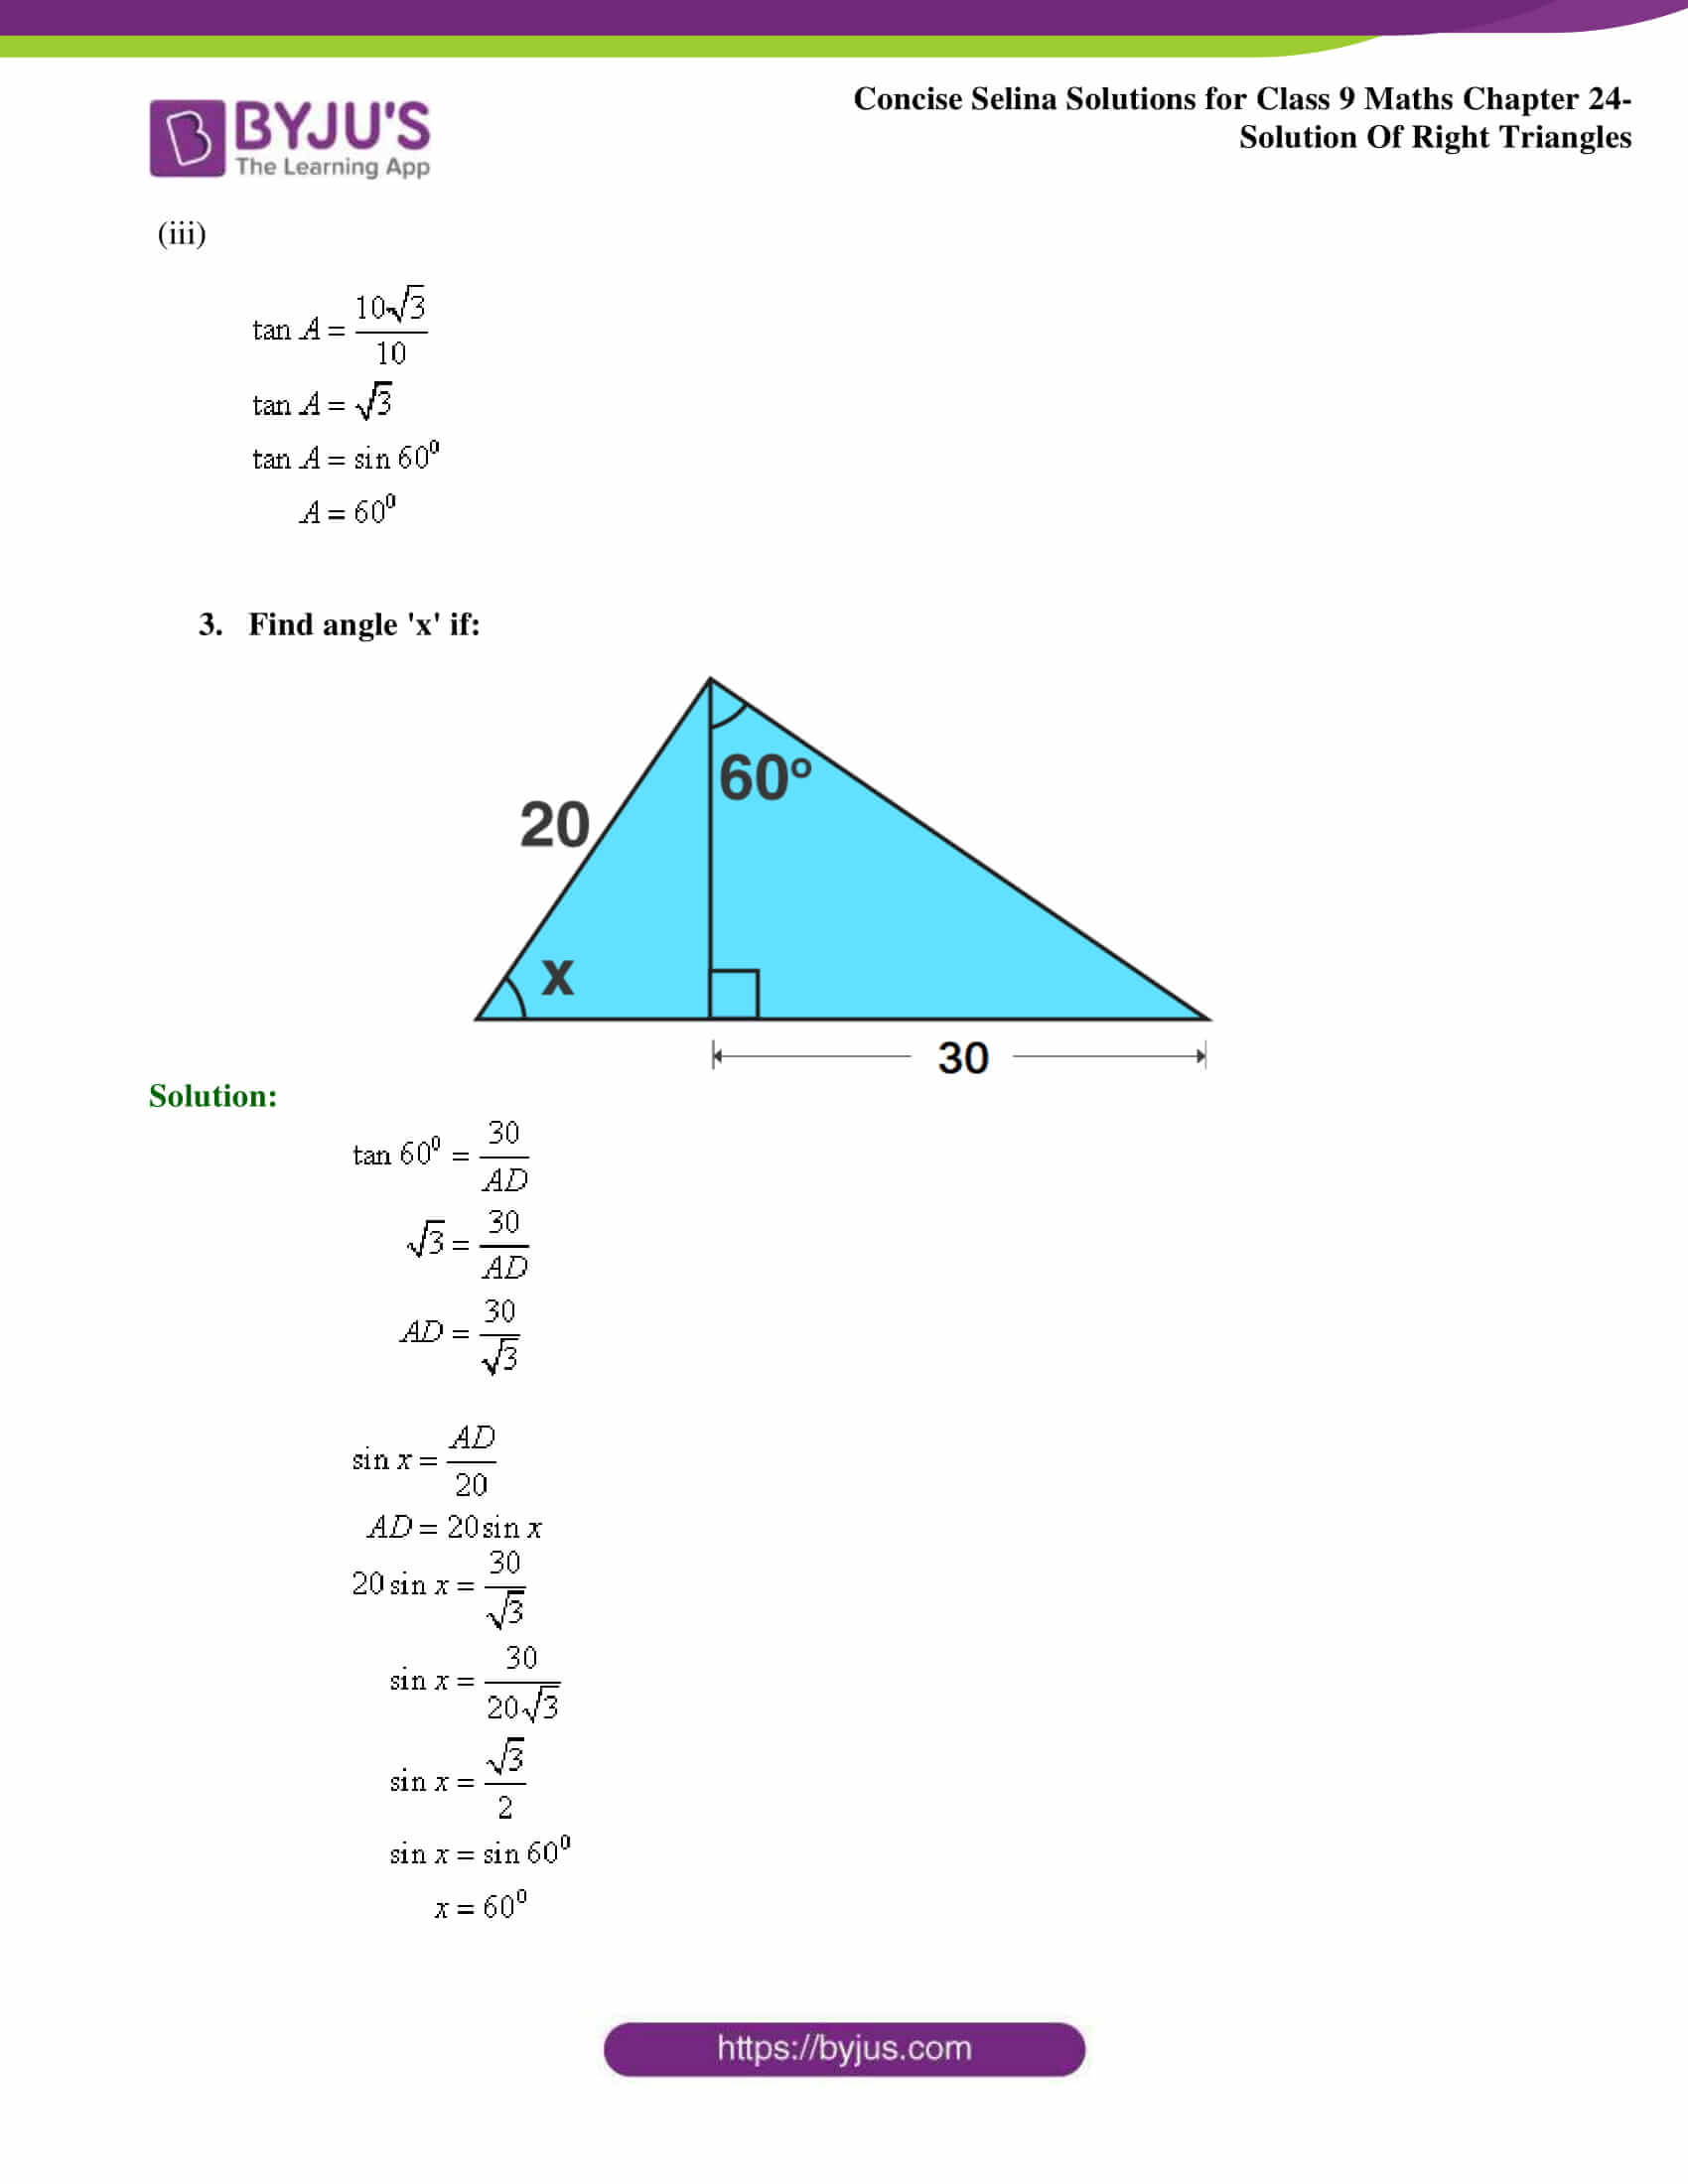 Concise Selina Solutions Class 9 Maths Chapter 24 Solution Of Right Triangles part 04